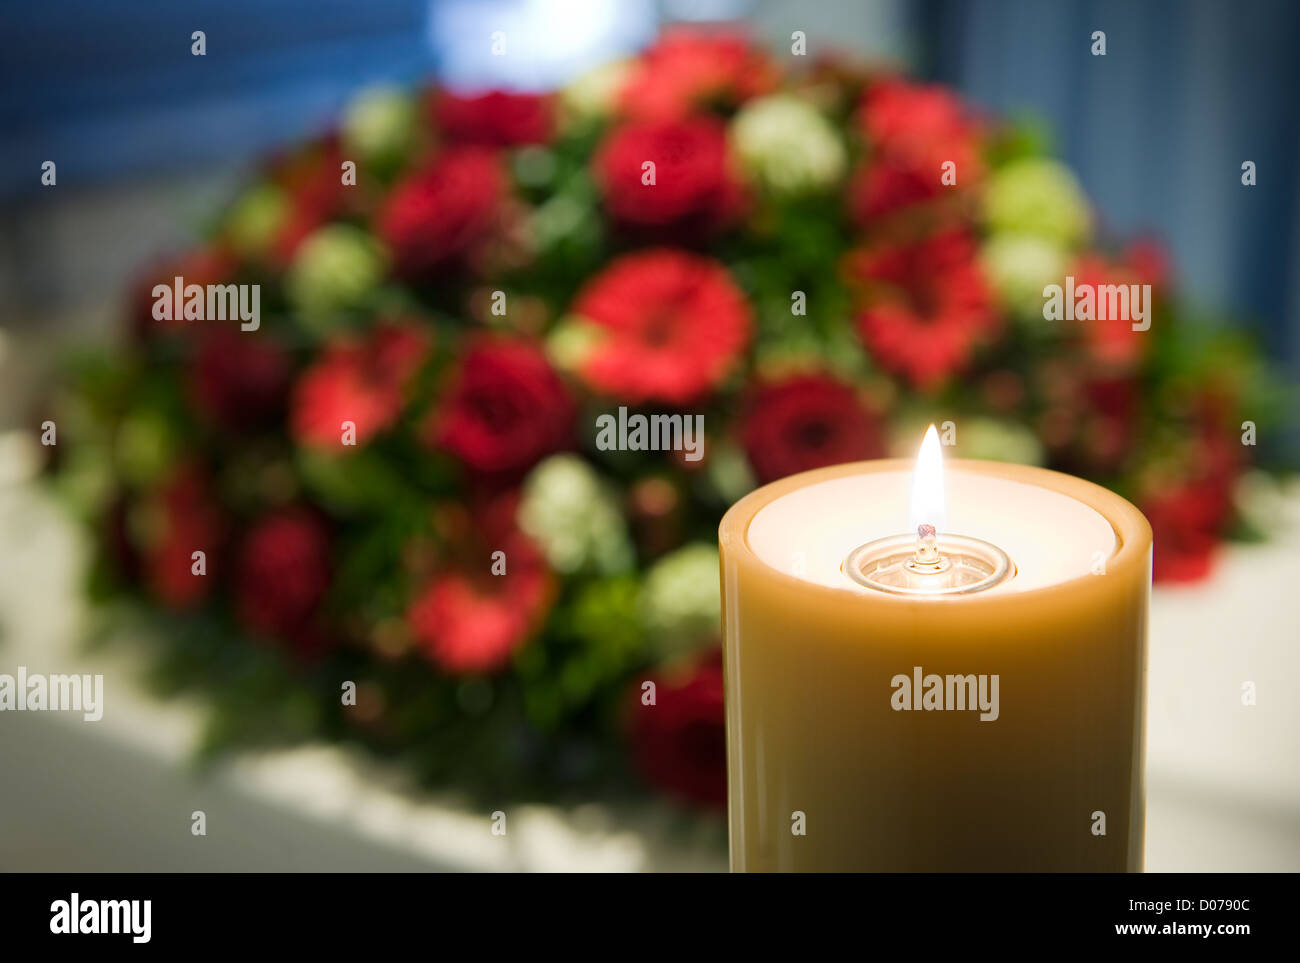 Death Flowers Candle Stock Photos & Death Flowers Candle Stock ...